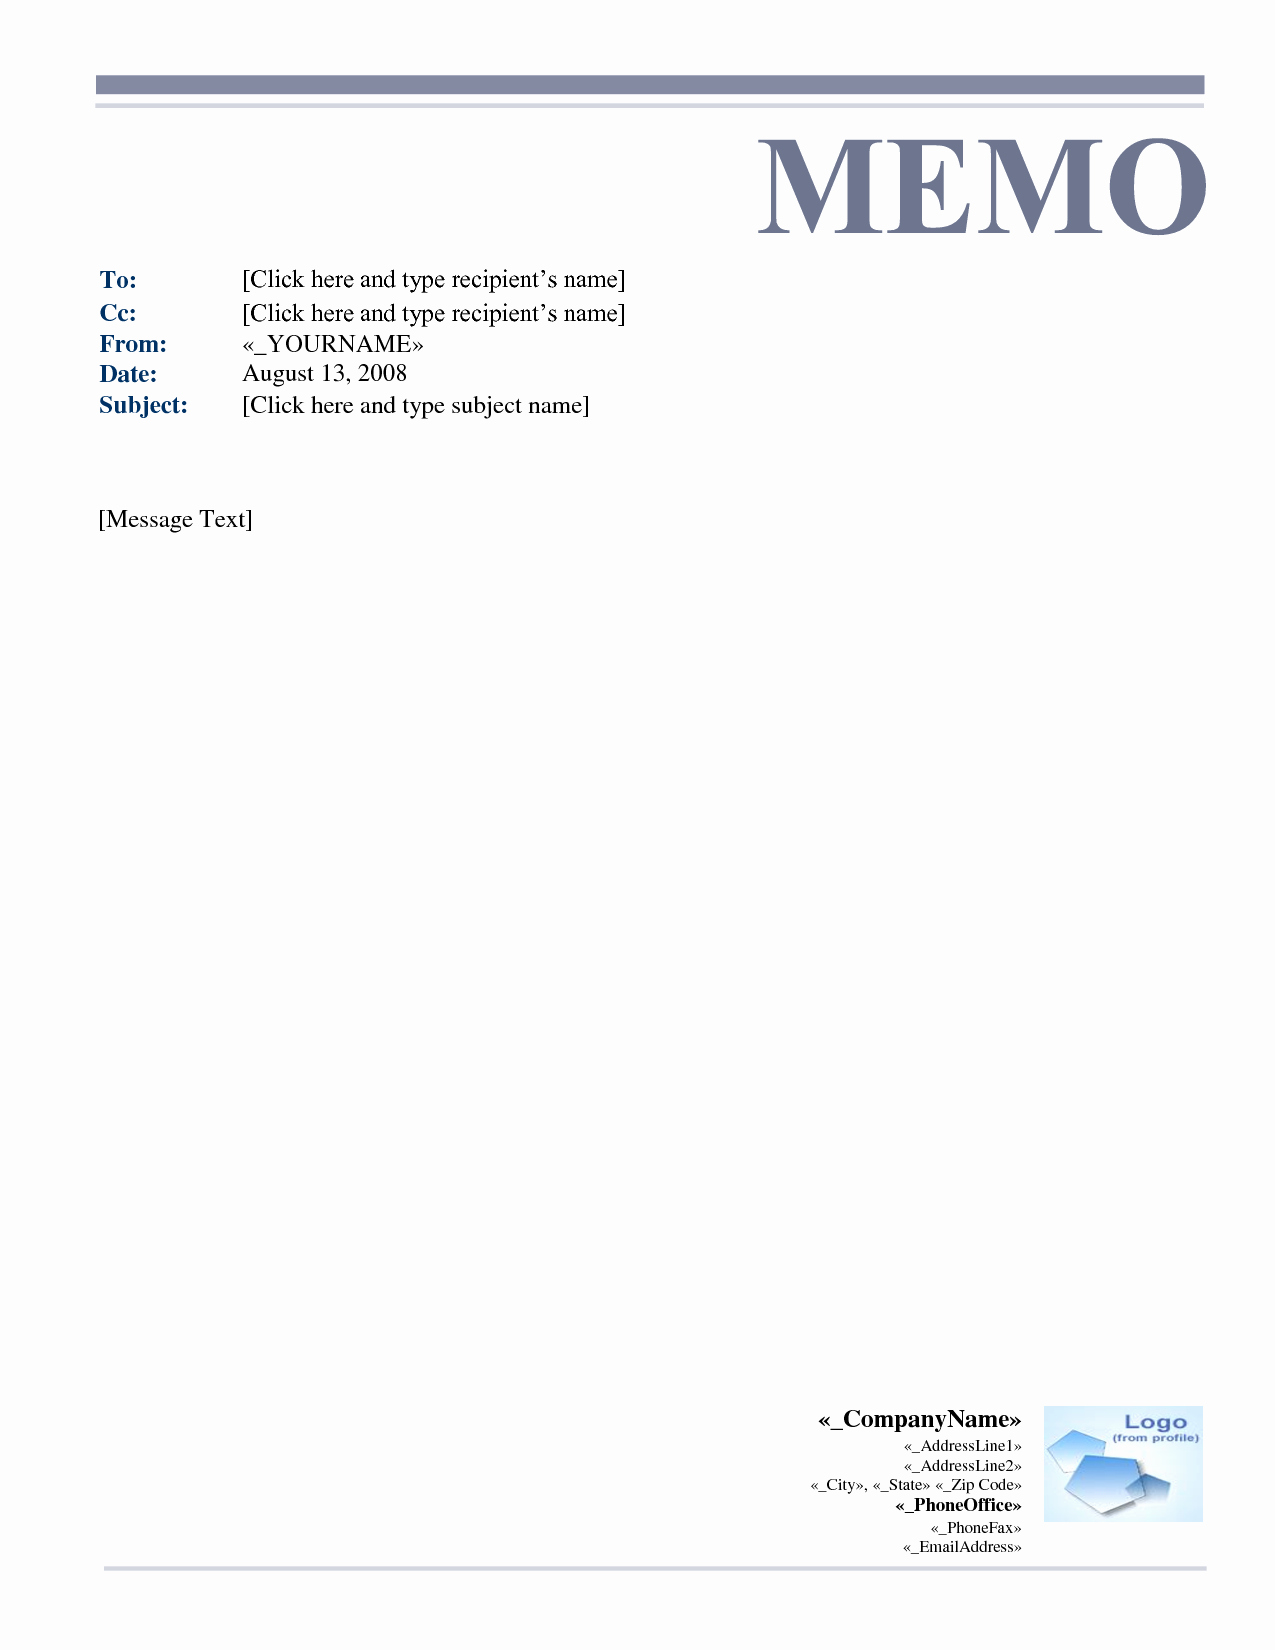 Ms Word Memo Templates Free Awesome Memo Template Word Beepmunk